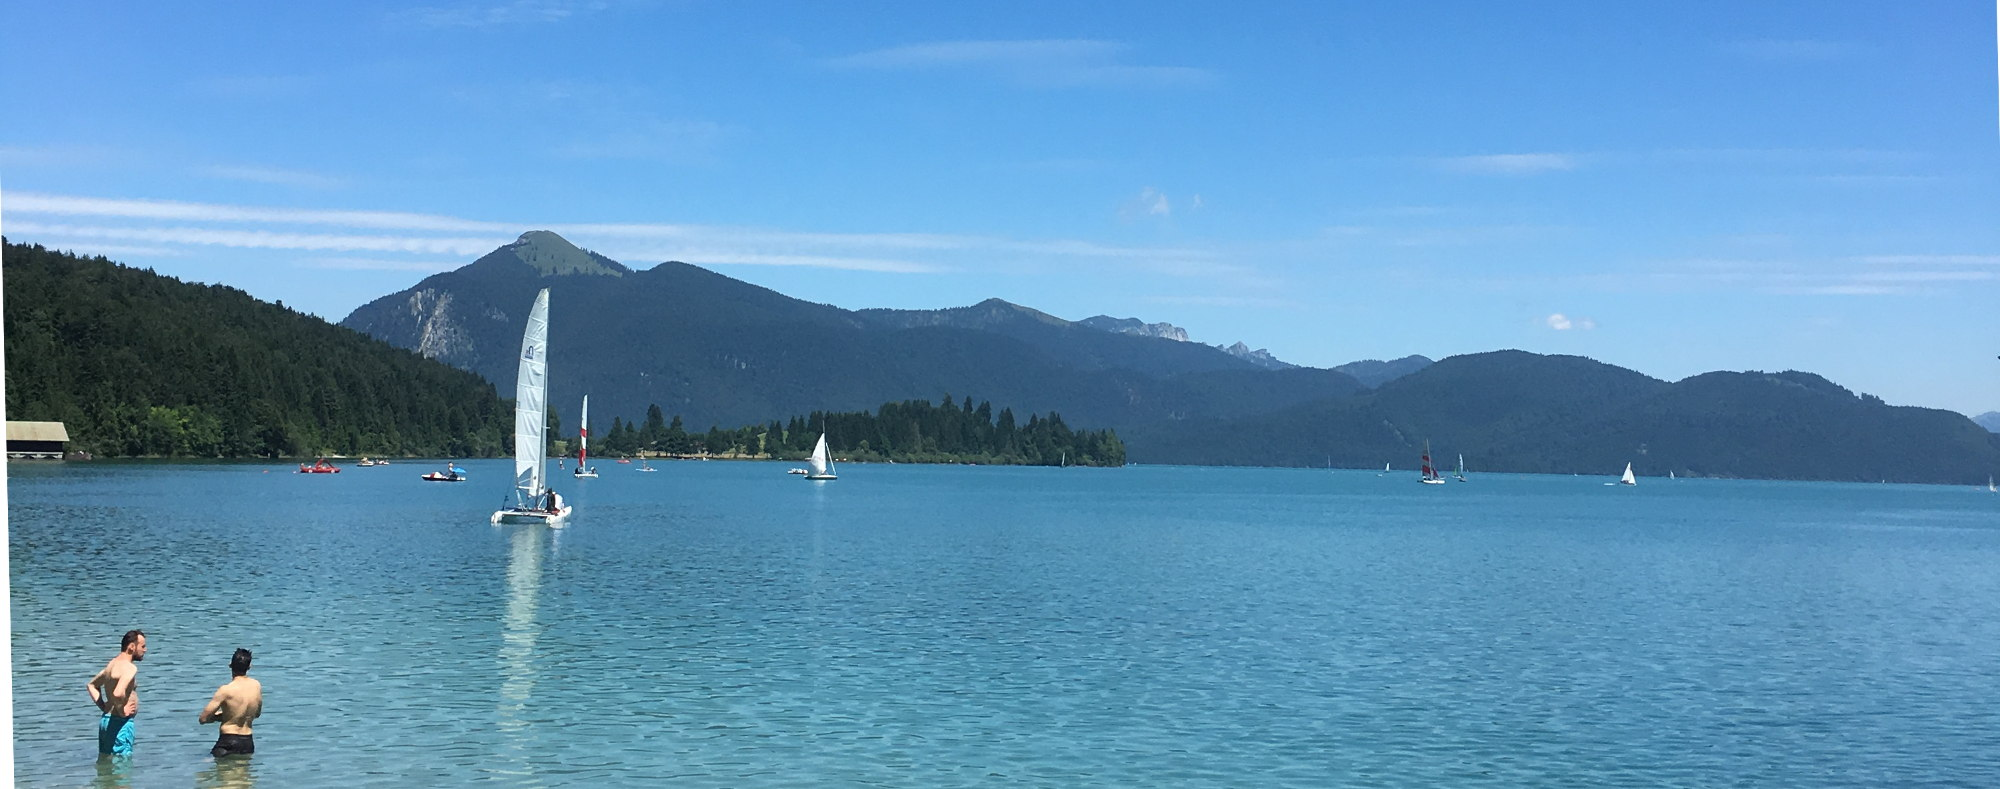 23 Hotels Walchensee Kochelsee Pension Zimmer